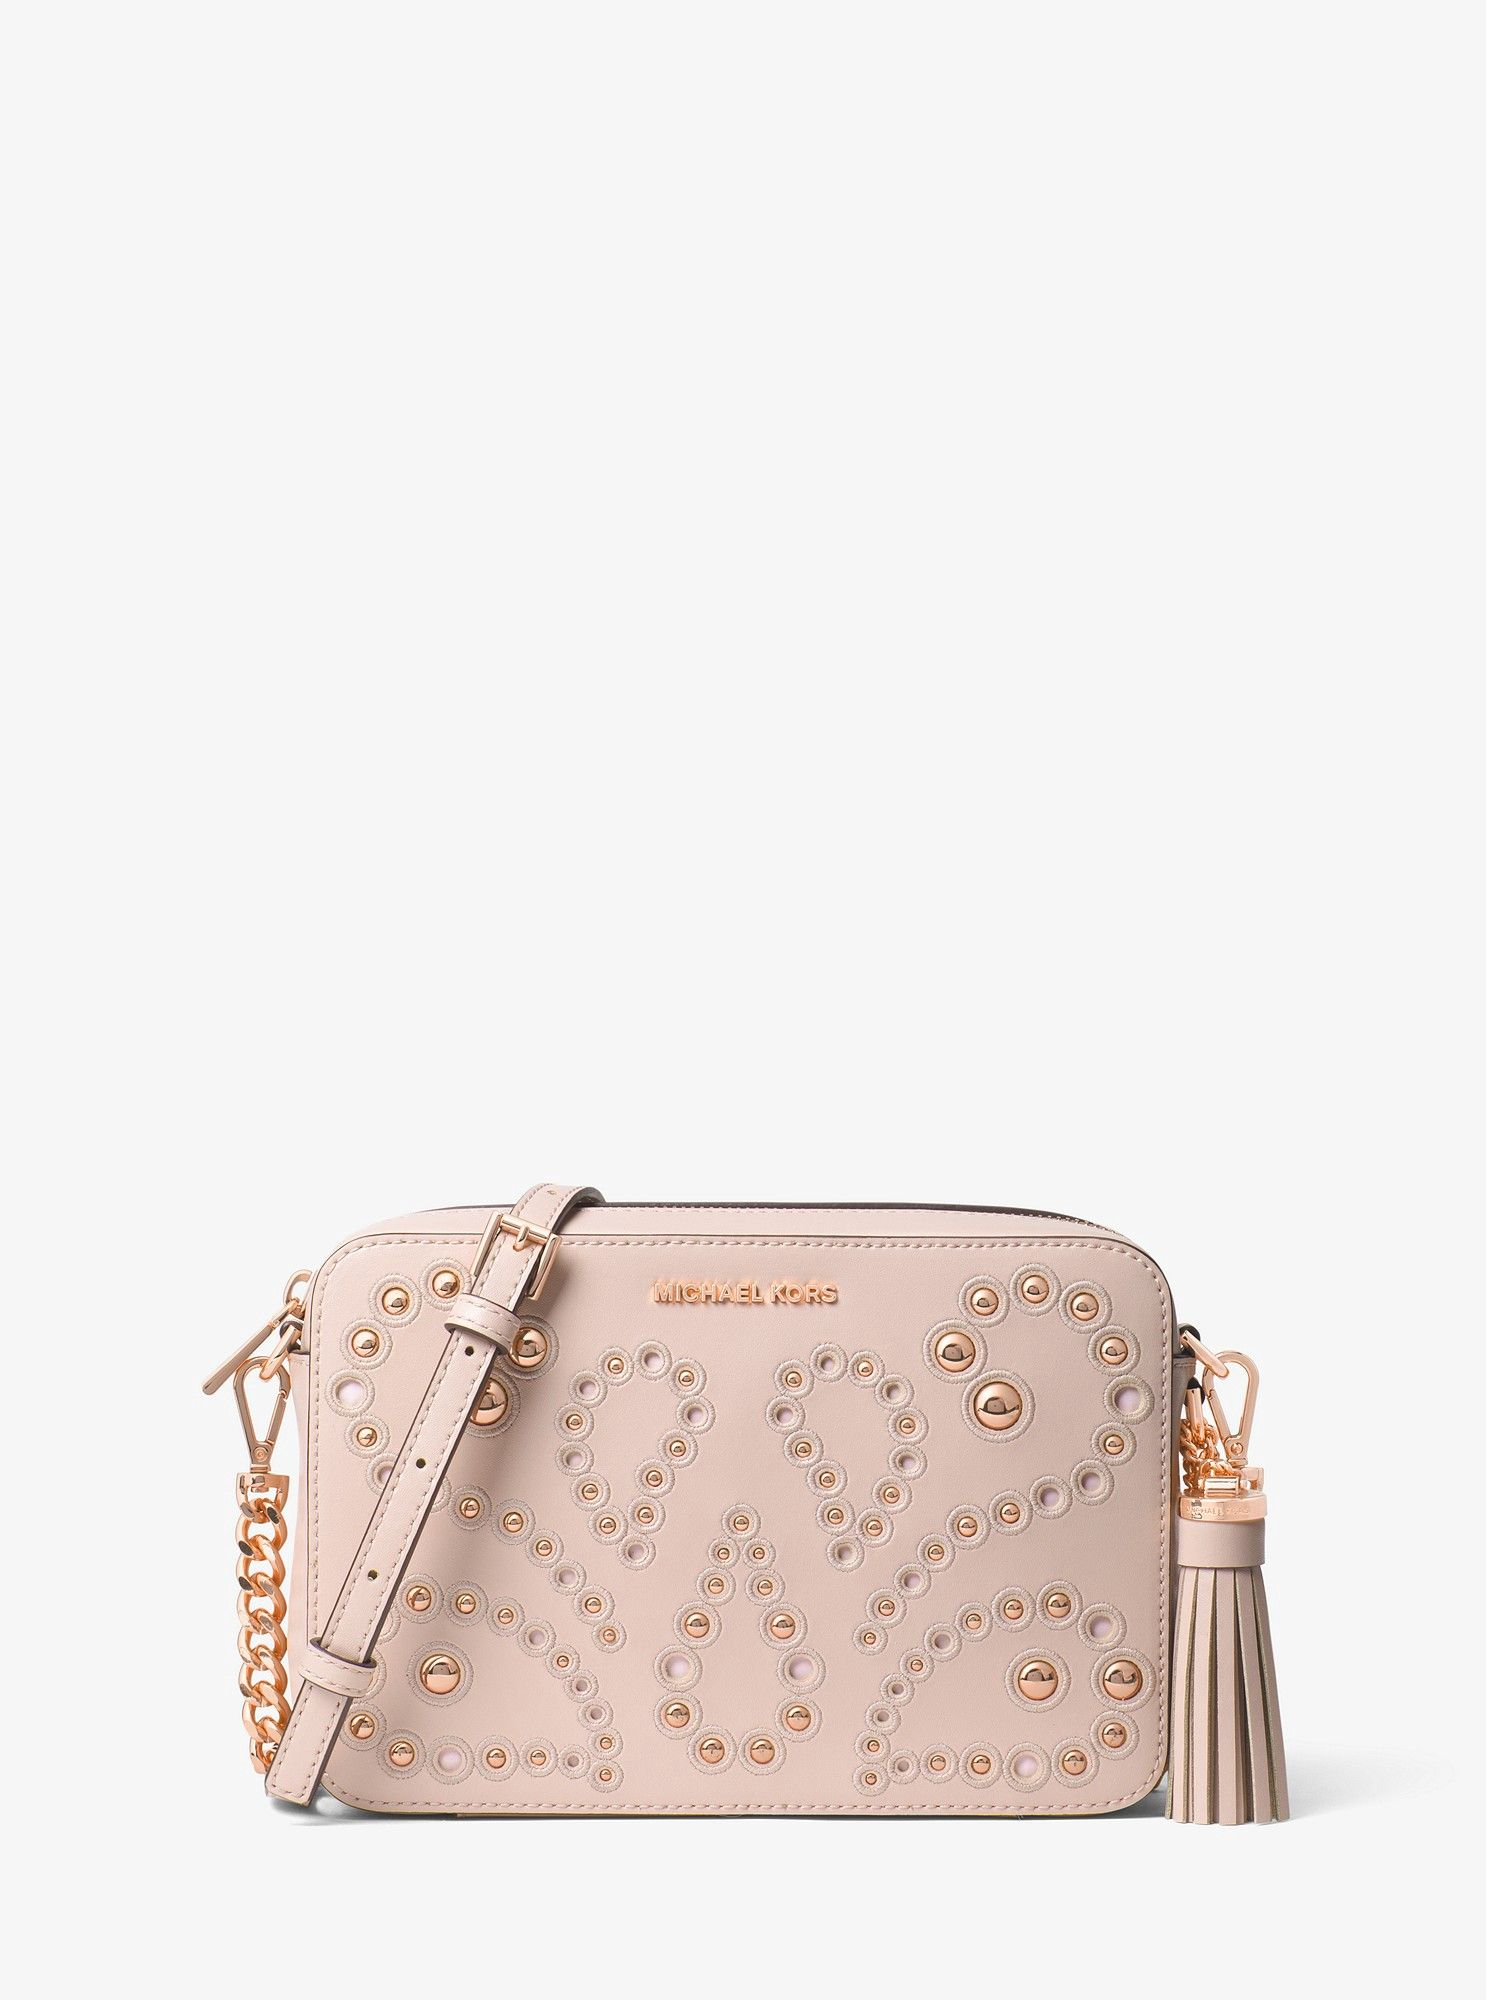 Michael Kors Ginny Medium Embellished Leather Crossbody - Soft Pink ... 84af0ecfc9cc1